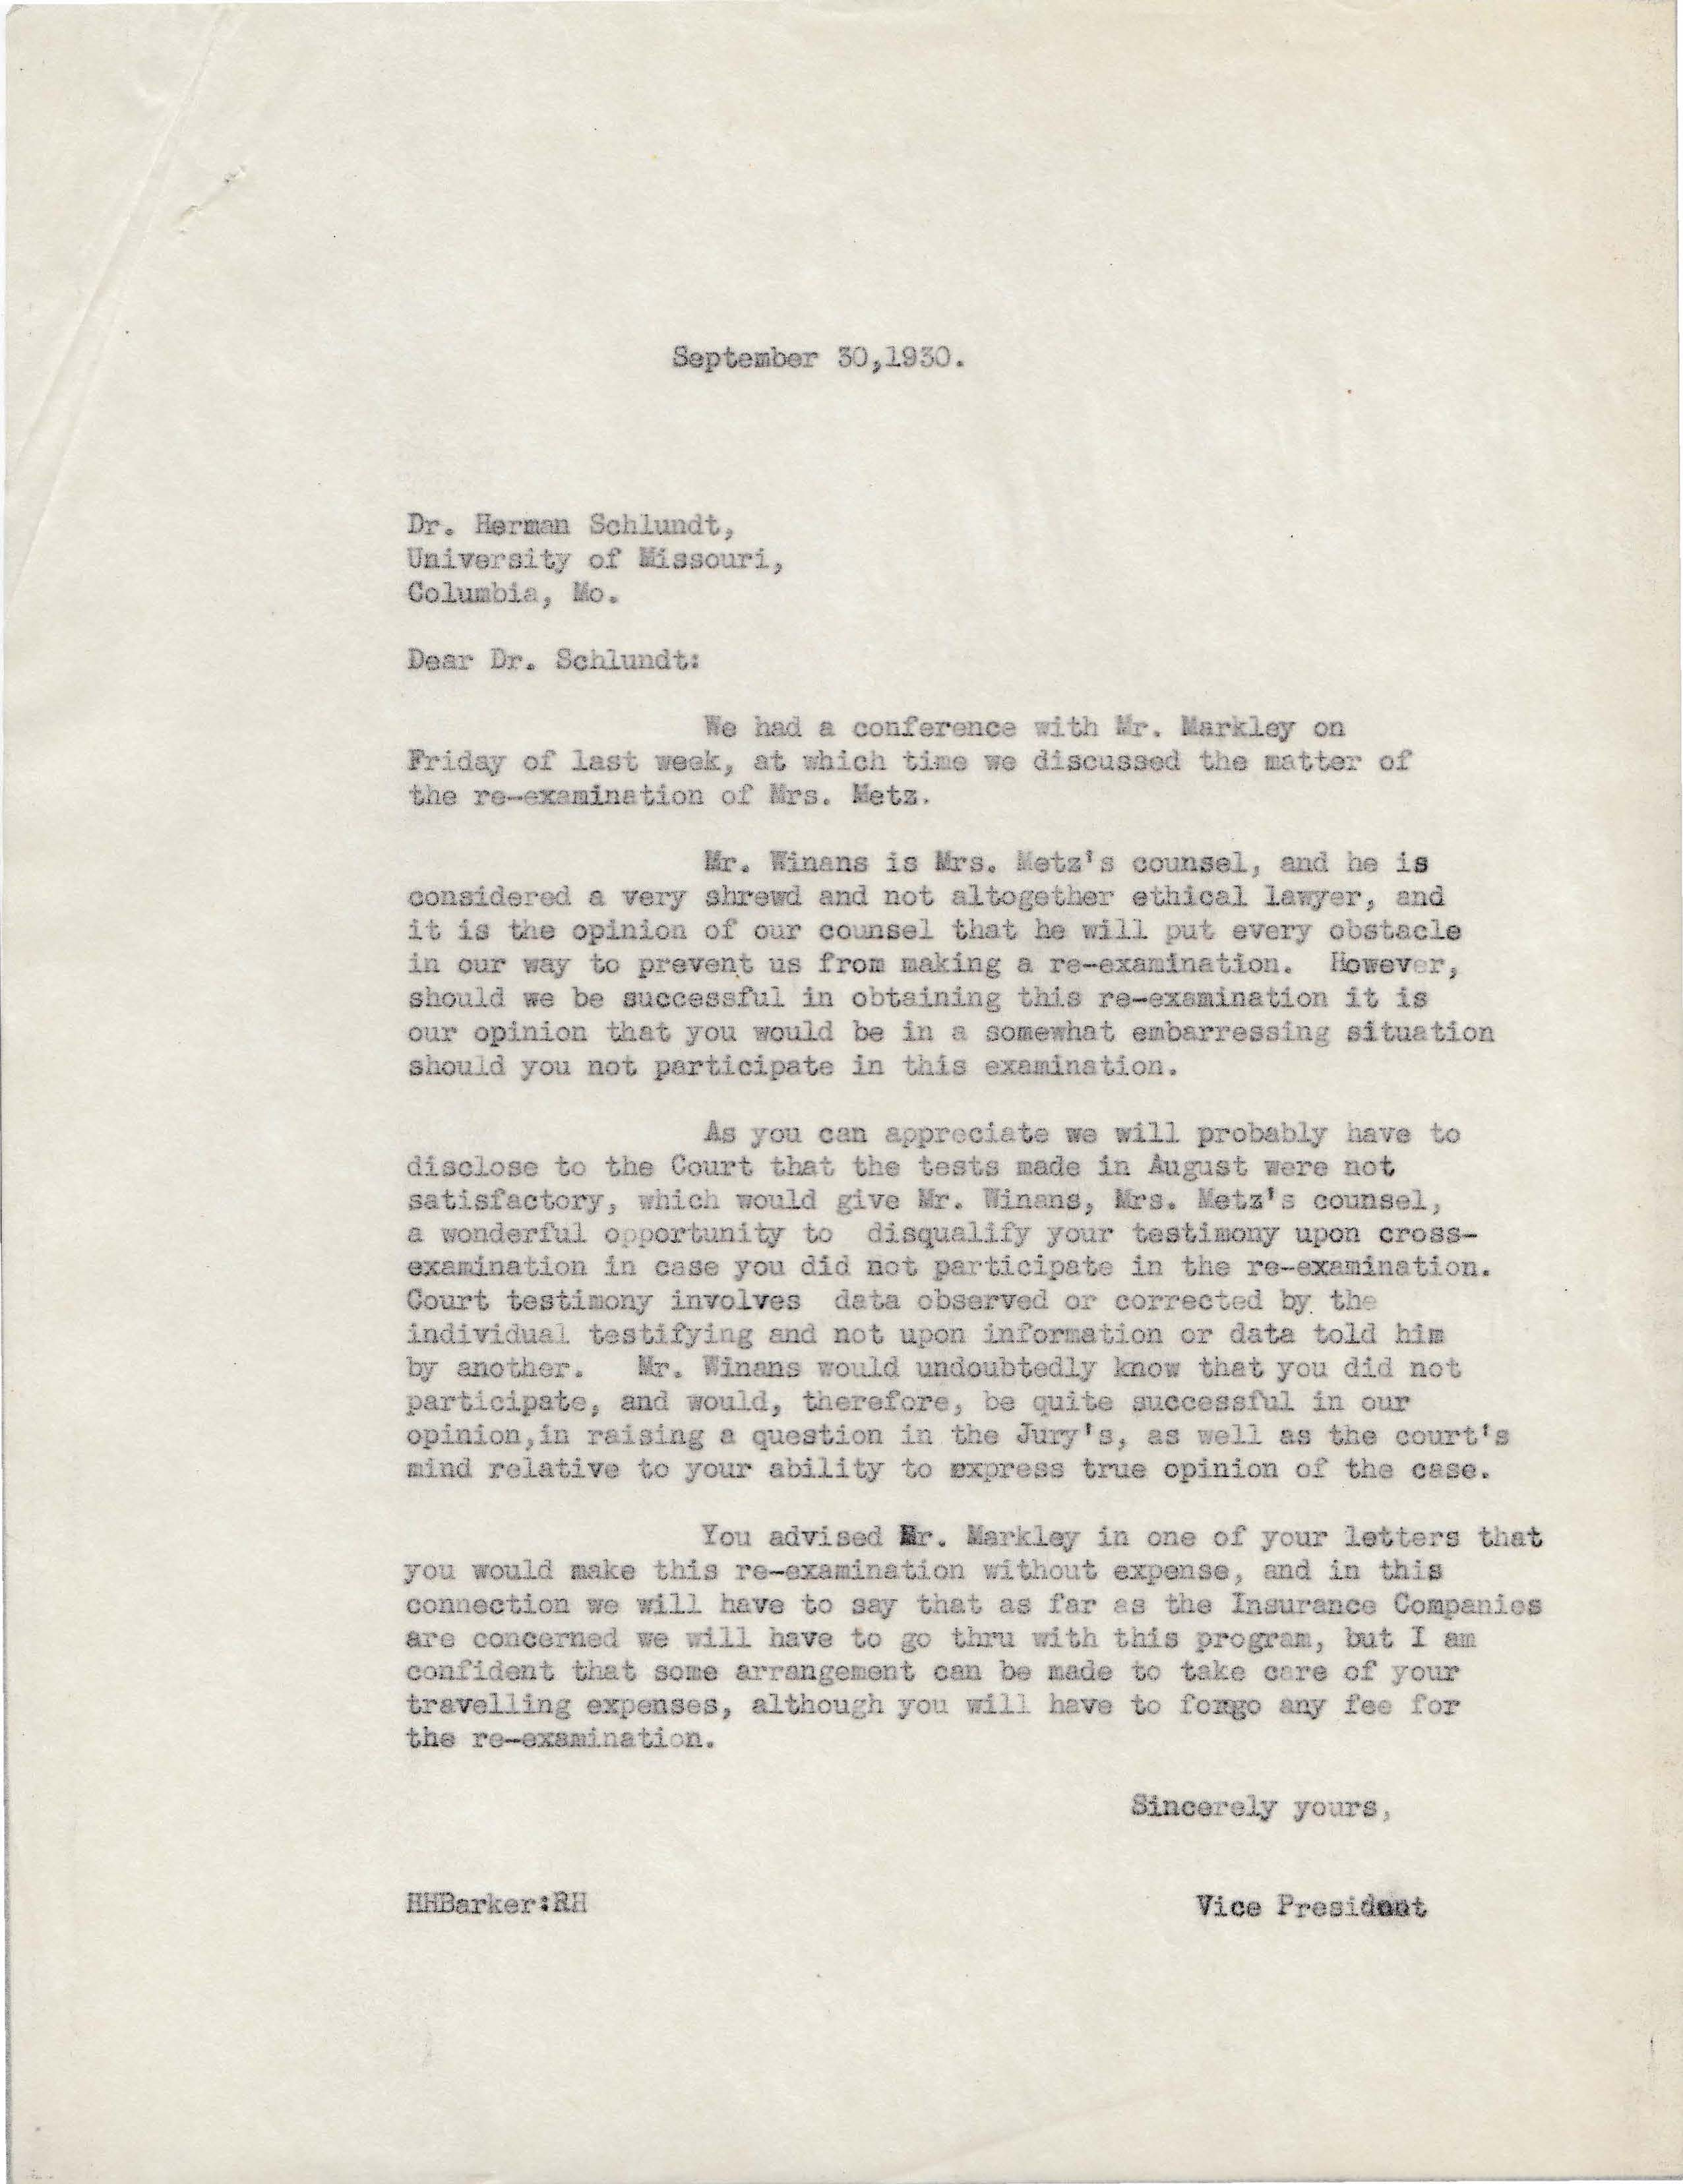 Letters Sent to Dr. Herman Schlundt, September 30, 1930